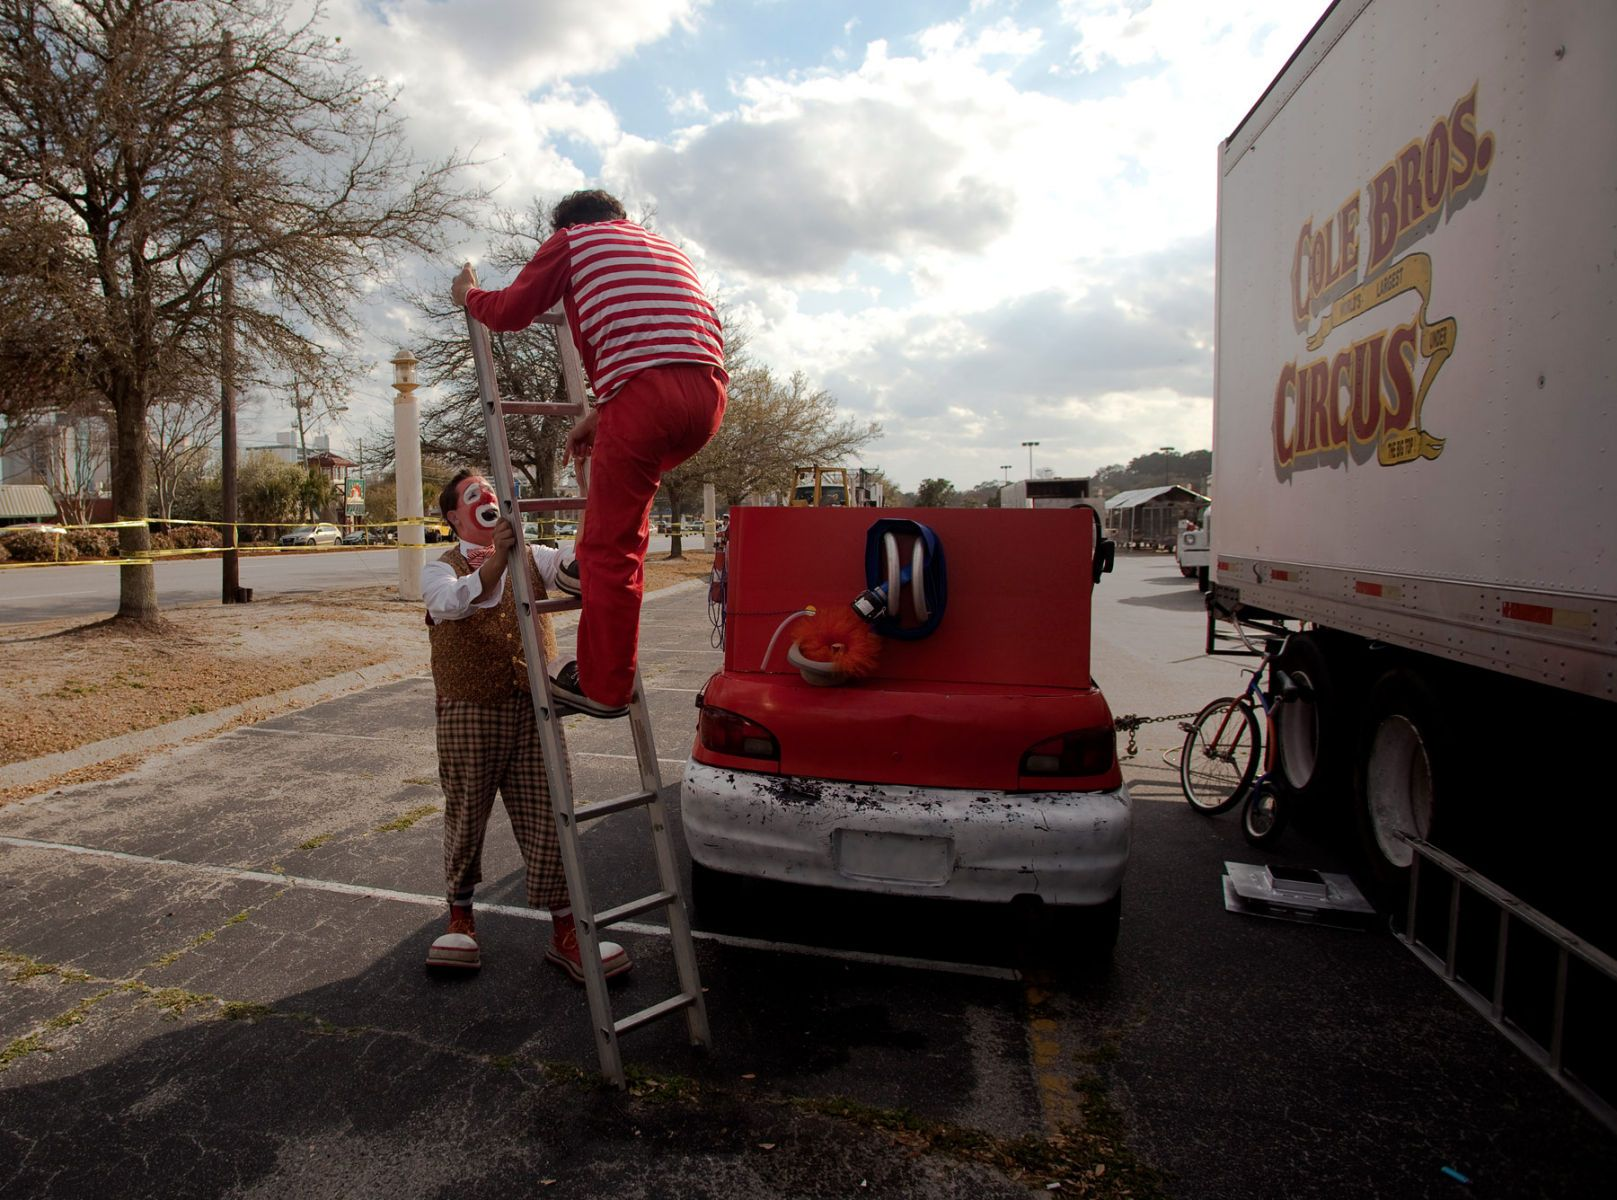 Clowns Josh Dummitt (L) and Kellan Bermudez go over a ladder routine as they prepare for a Cole Brothers Circus of the Stars show during a stop in Myrtle Beach, South Carolina March 31, 2013. Traveling circuses such as the Cole Brothers Circus of the Stars, complete with it's traveling big top tent, set up their tent city in smaller markets all along the East Coast of the United States as they aim to bring the circus to rural areas. The Cole Brothers Circus, now in its 129th edition, travels to 100 cities in 20-25 states and stages 250 shows a year.   REUTERS/Randall Hill   (UNITED STATES)